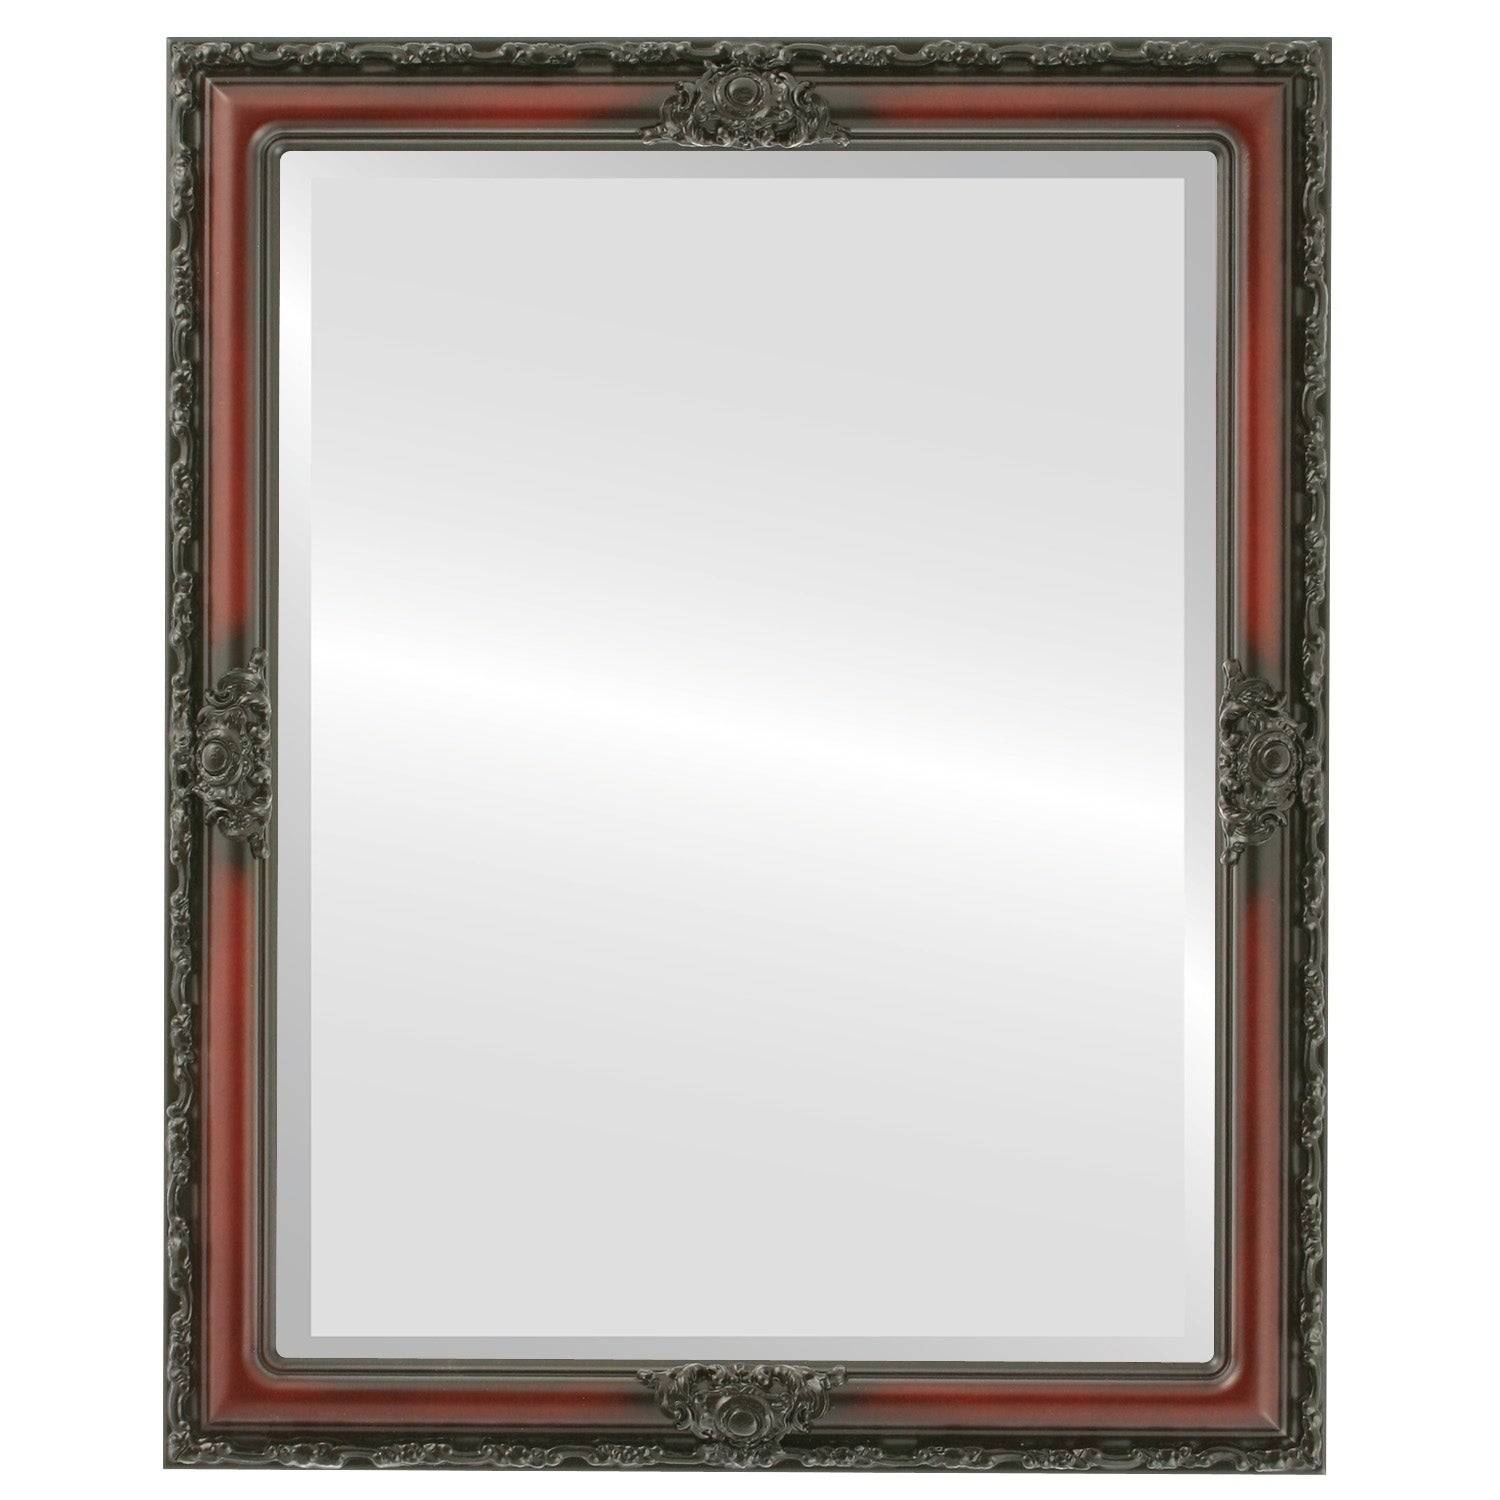 Jefferson Framed Rectangle Mirror in Rosewood - Red (Medium (15-32 high) - 24x30)